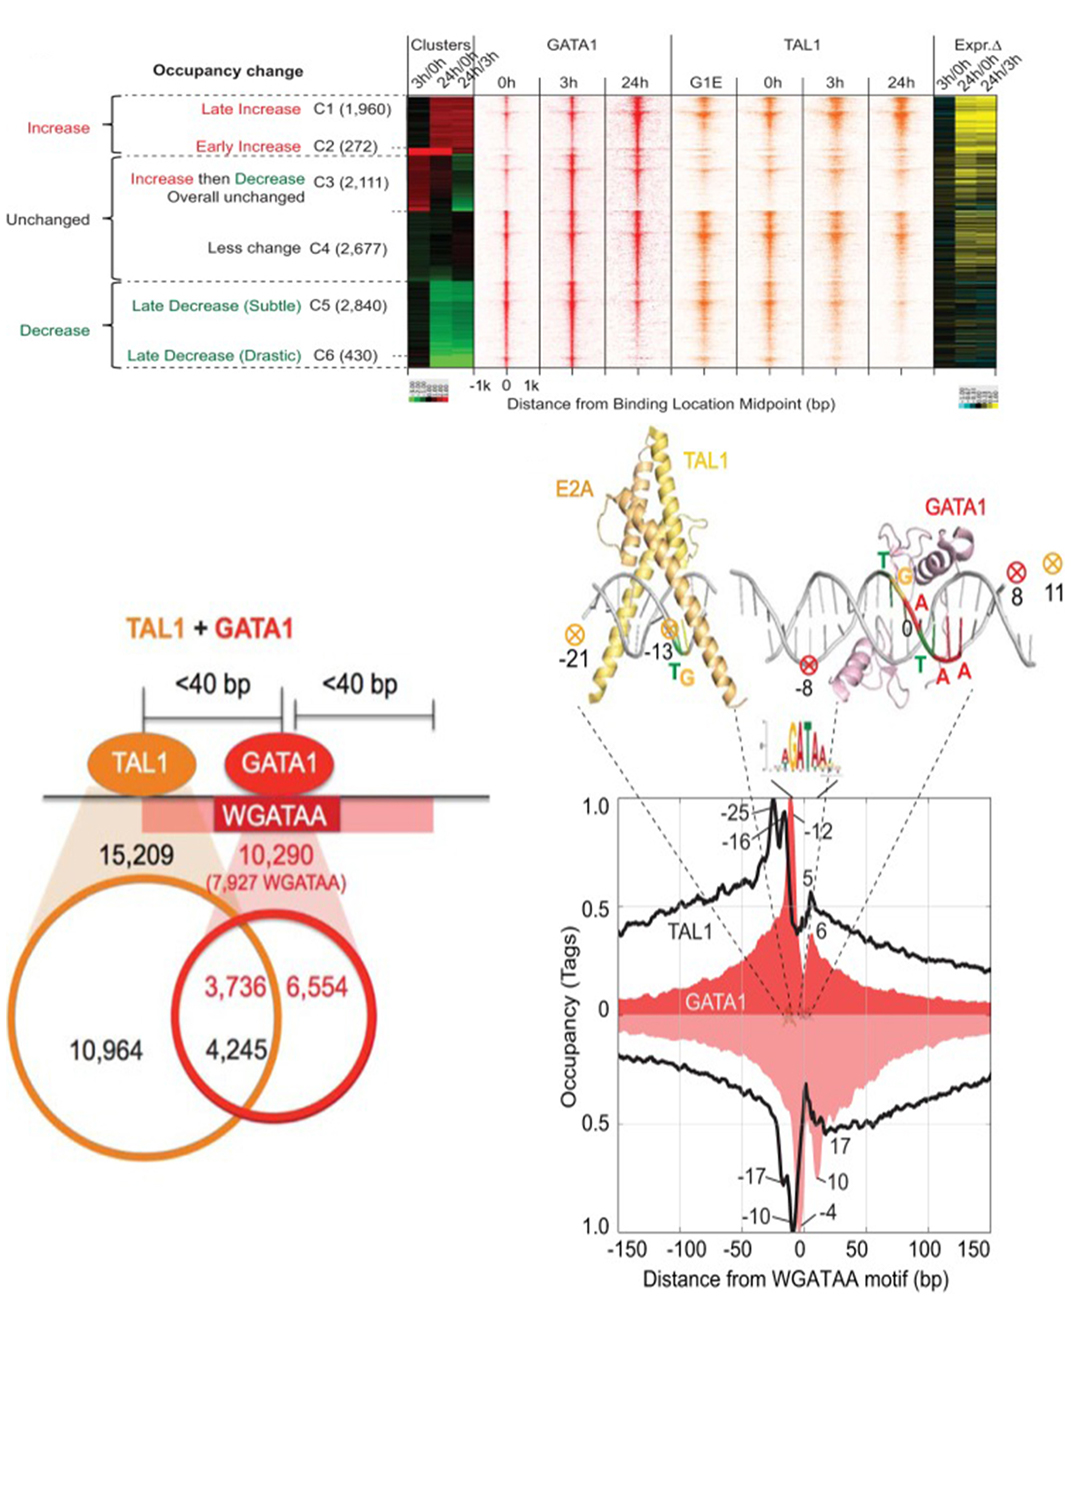 Genome-Wide Organization of GATA1 and TAL1 Determined at High Resolution. Pugh BF, Hardison RC, Mahony S